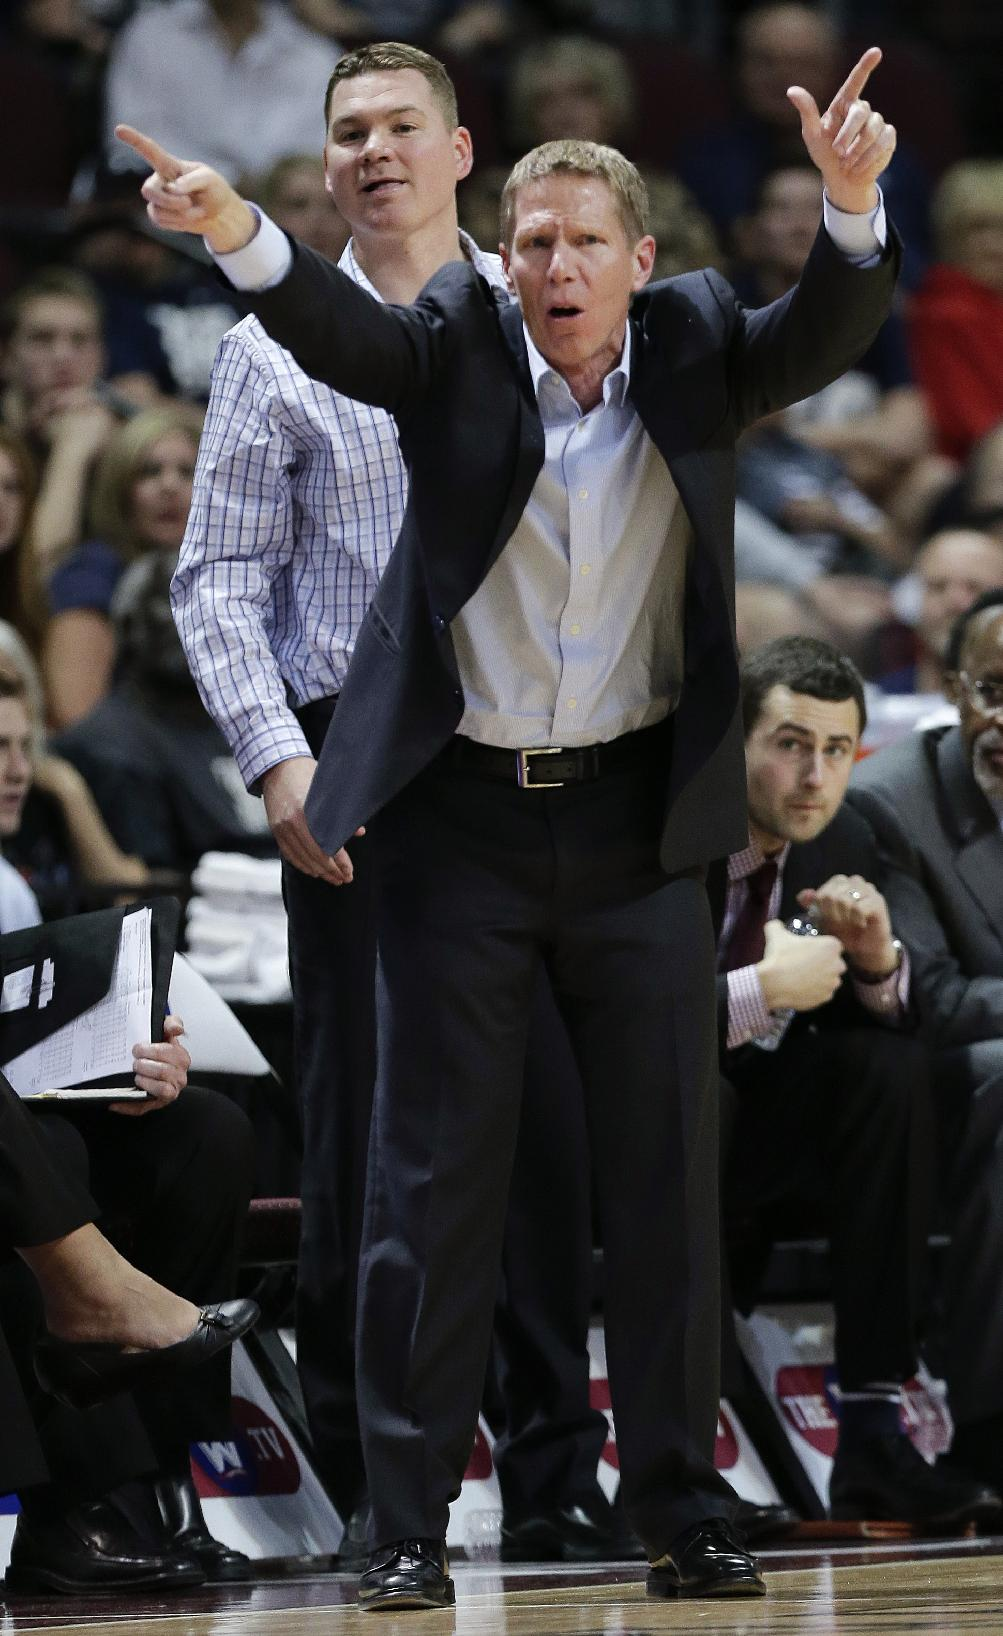 Gonzaga coach Mark Few motions to players in the second half against BYU during an NCAA college basketball game for the West Coast Conference men's tournament title, Tuesday, March 11, 2014, in Las Vegas. Gonzaga won 75-64